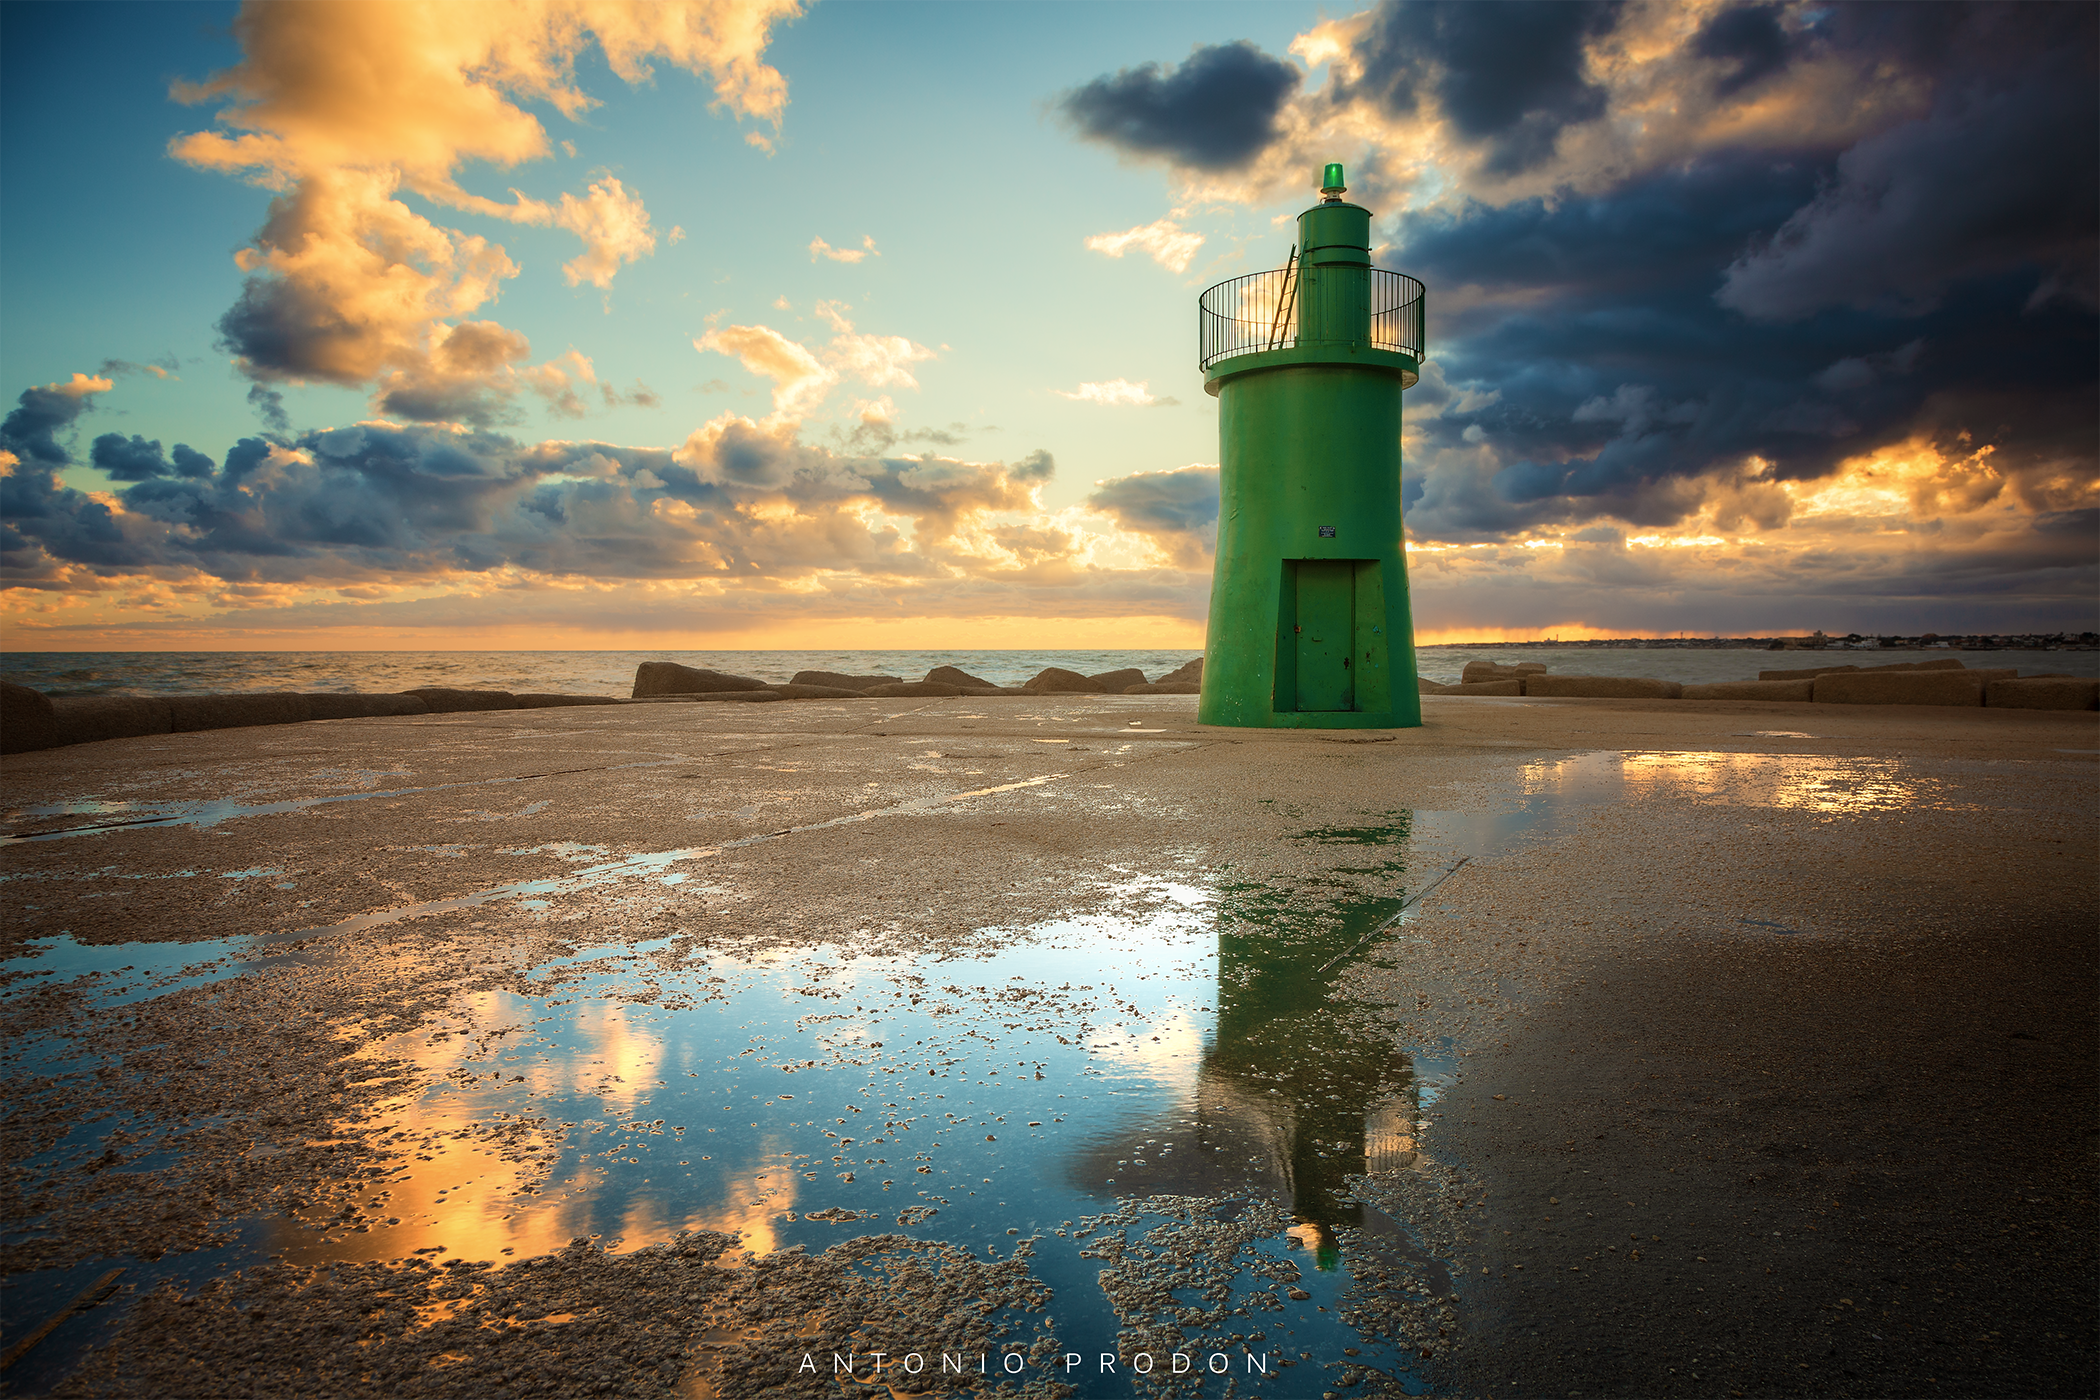 The Green Lighthouse placed in Trani dunring the first sunrise of the 2019 year.